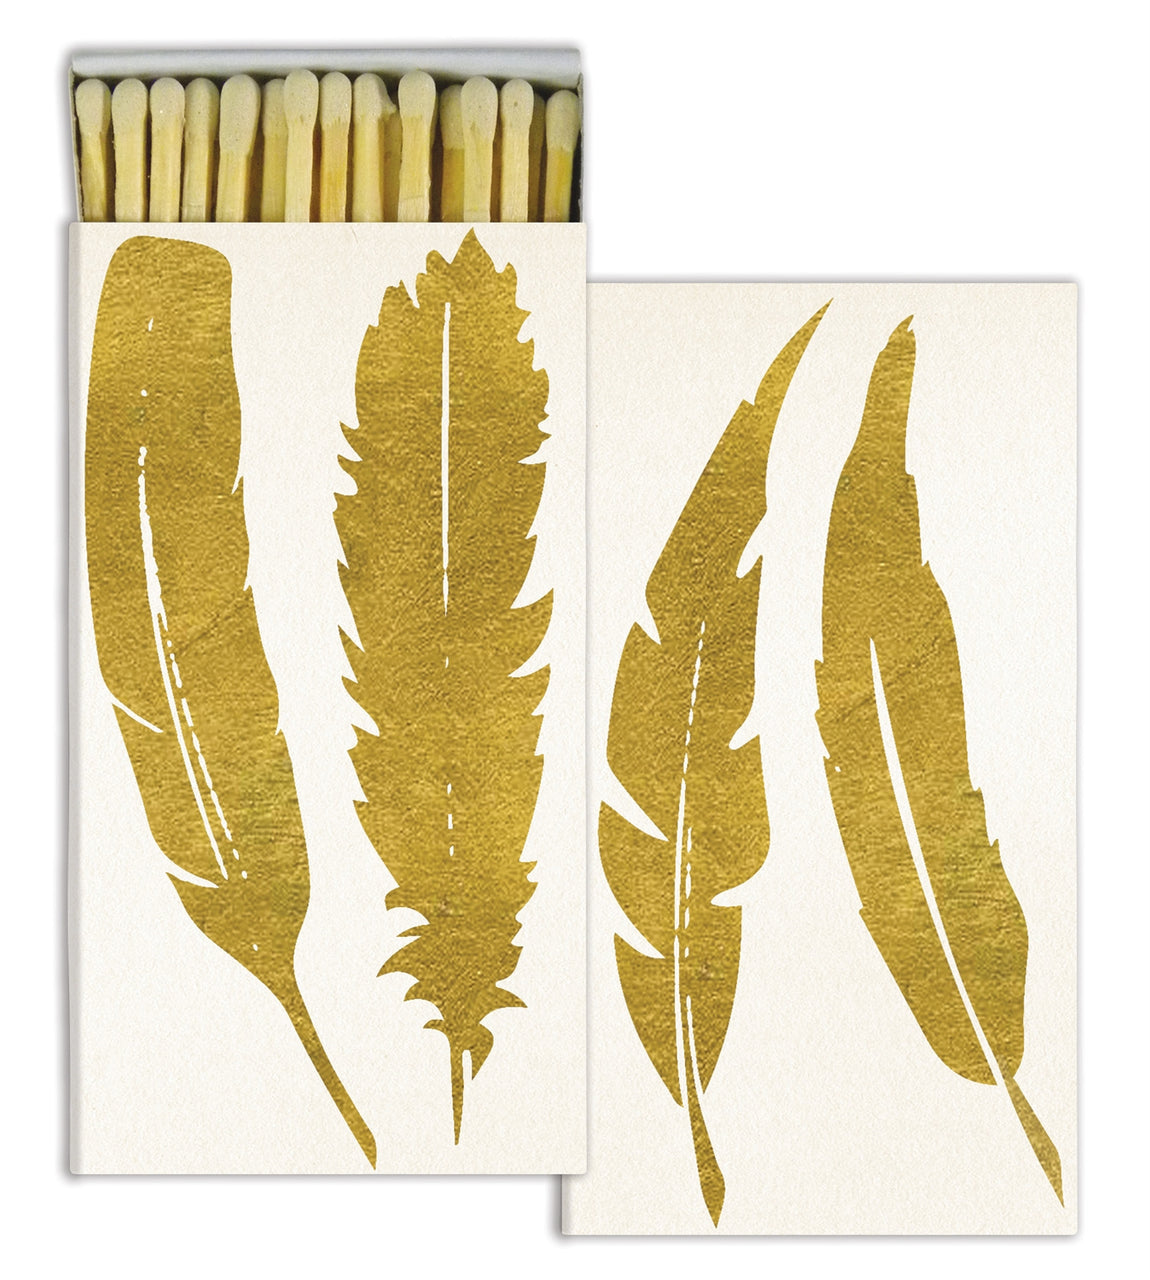 MATCHES - FEATHER - GOLD FOIL HomArts quintessential article of daily use, our signature Match Boxes flaunt unique designs with coordinating match tips. Sweet as a hostess gift, a perfect accompaniment to a candle, and always an eye catching pop of graphic decor. Safety matches, 50 sticks per box.